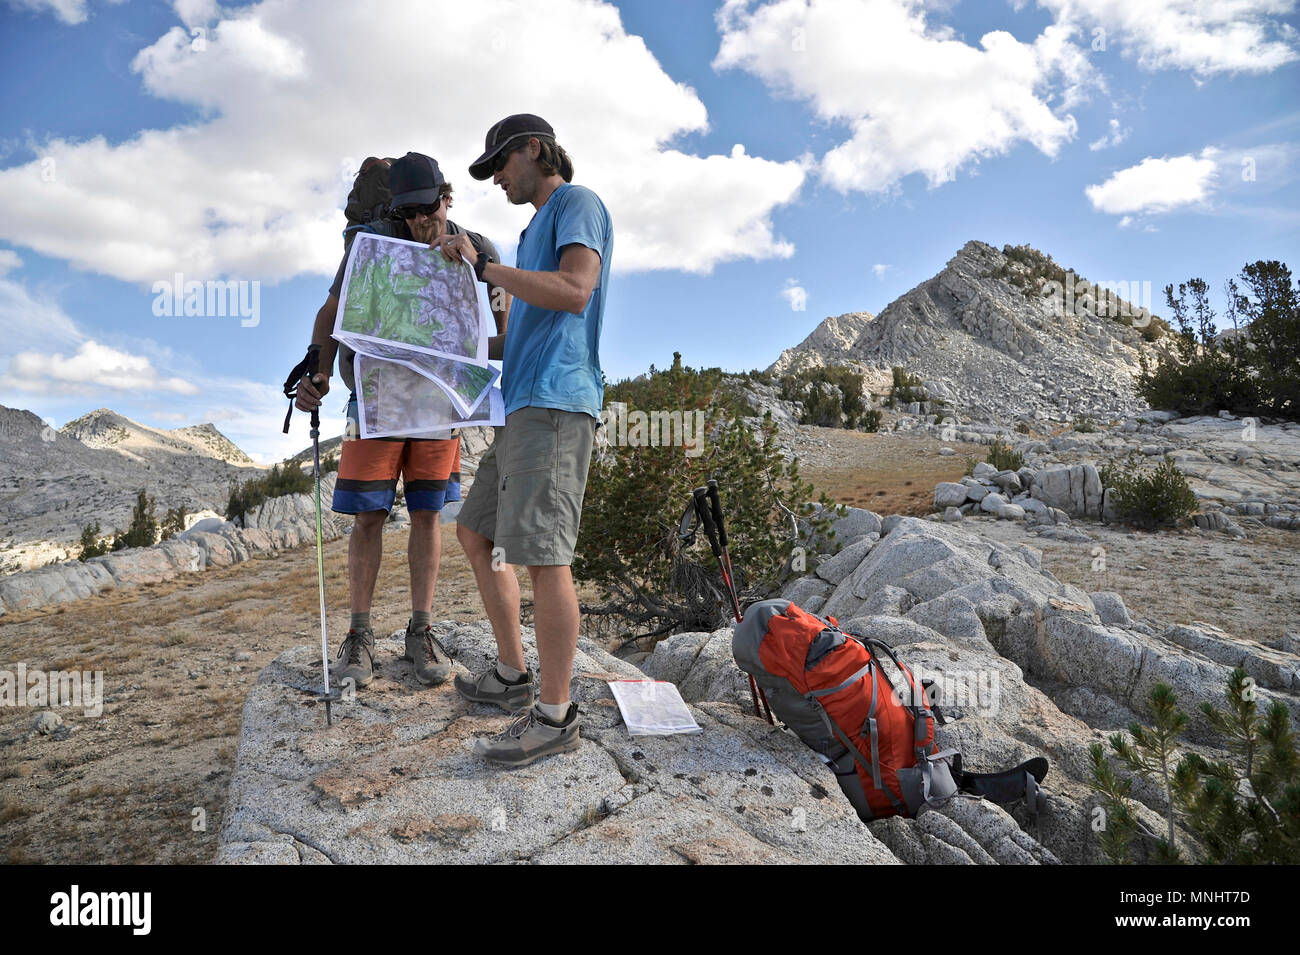 Backpackers refer to their map at Grouse Lake Pass on a two-week trek of the Sierra High Route in Kings Canyon National Park in California. The 200-mile route roughly parallels the popular John Muir Trail through the Sierra Nevada Range of California from Kings Canyon National Park to Yosemite National Park. - Stock Image